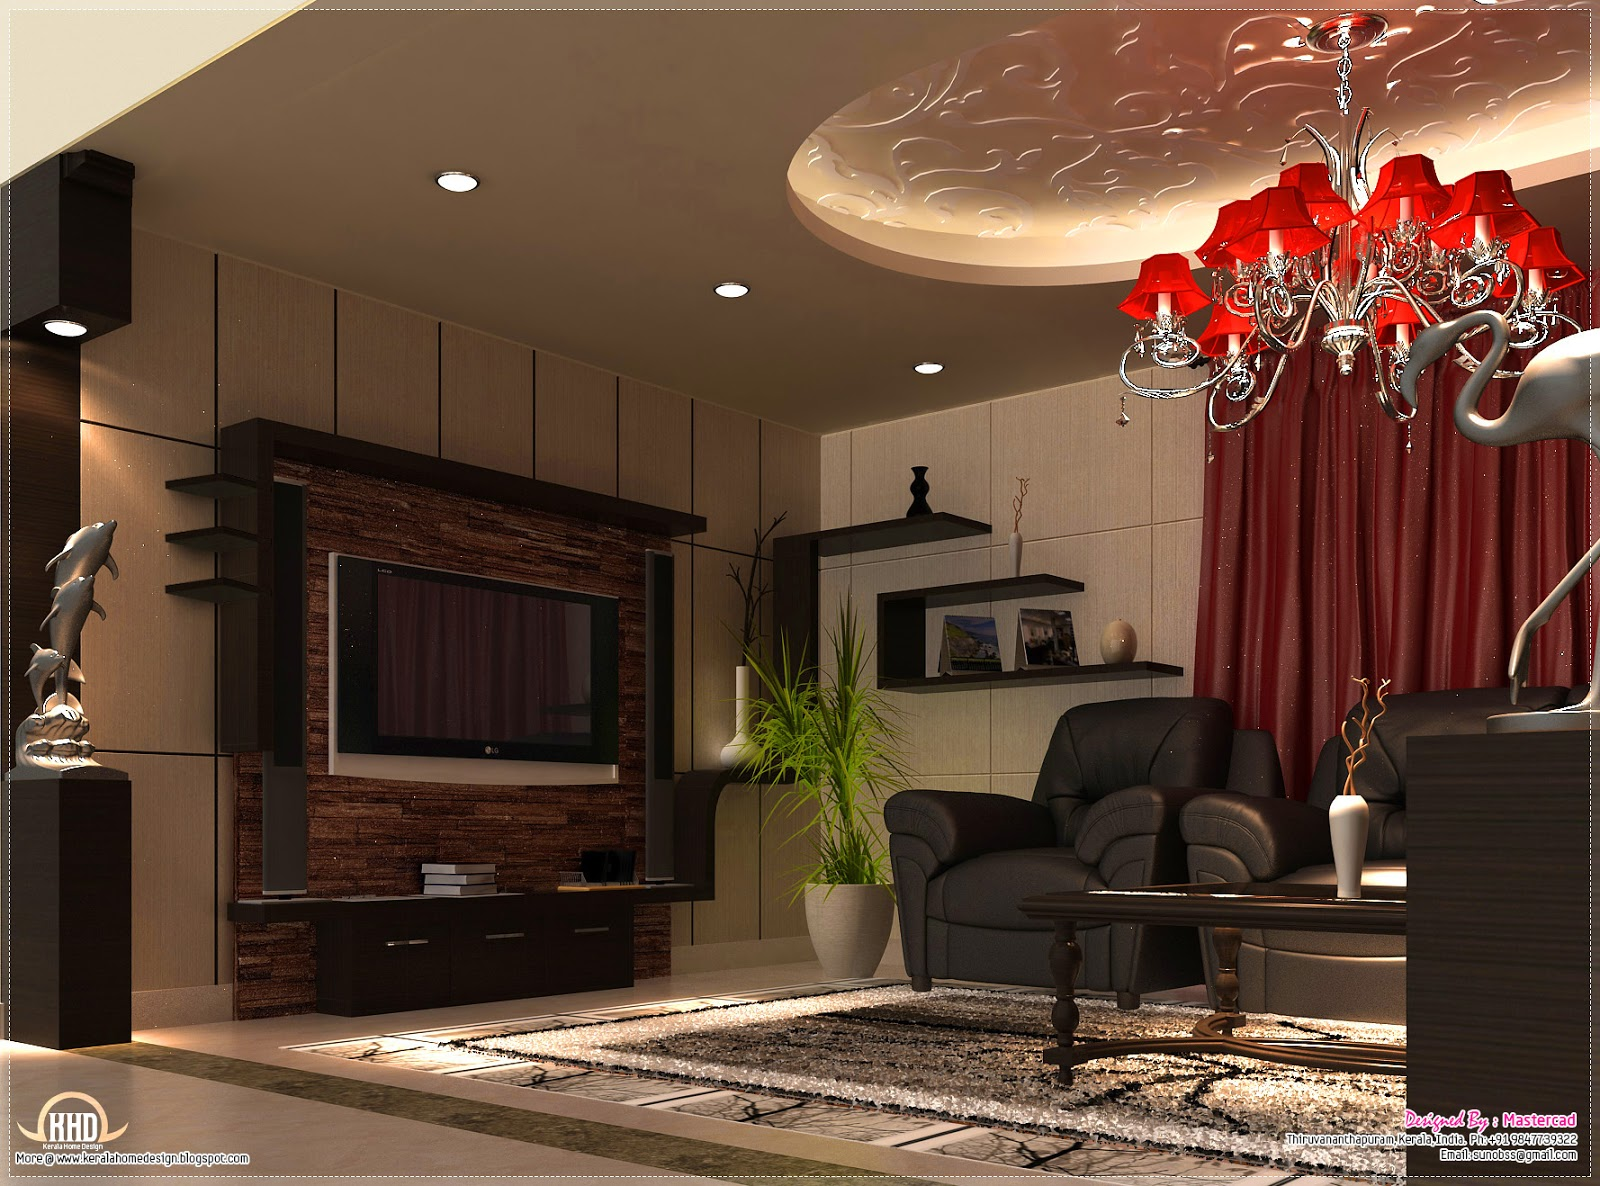 Interior design ideas kerala home design and floor plans Home interior design ideas in chennai